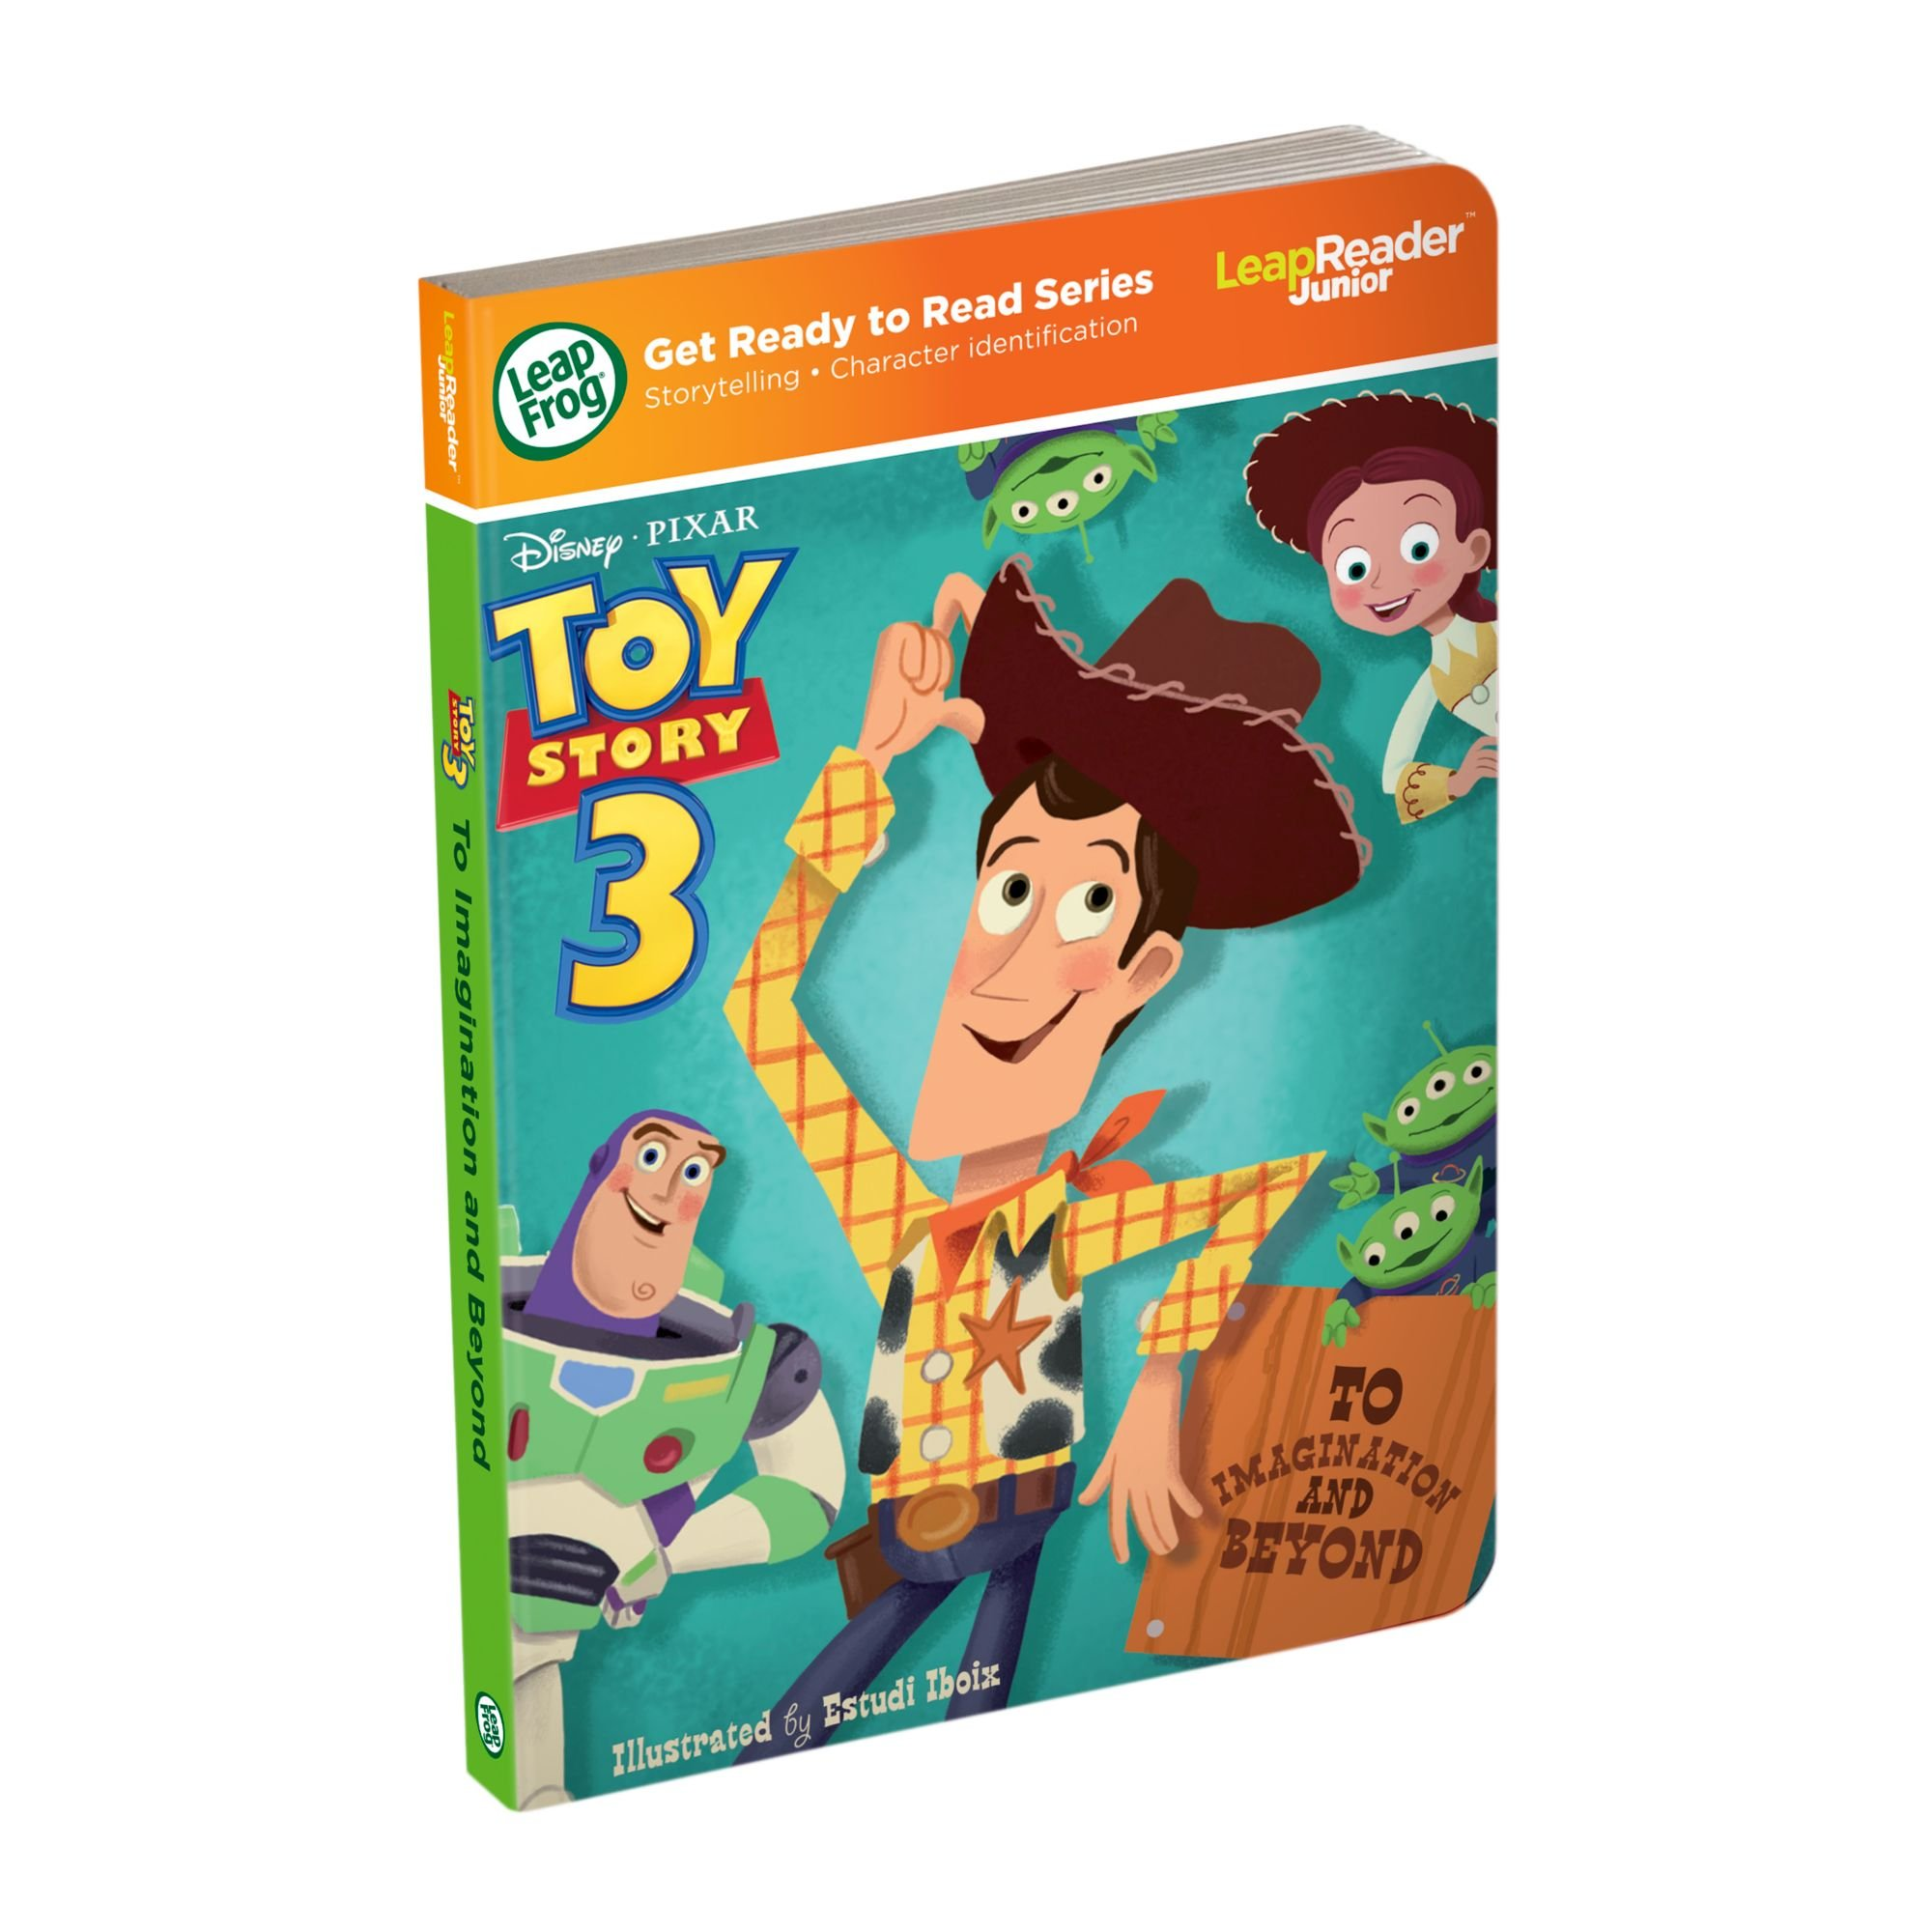 LeapFrog LeapReader Junior Book: DisneyPixar Toy Story 3: To Imagination and Beyond (works with Tag Junior) by LeapFrog (Image #1)